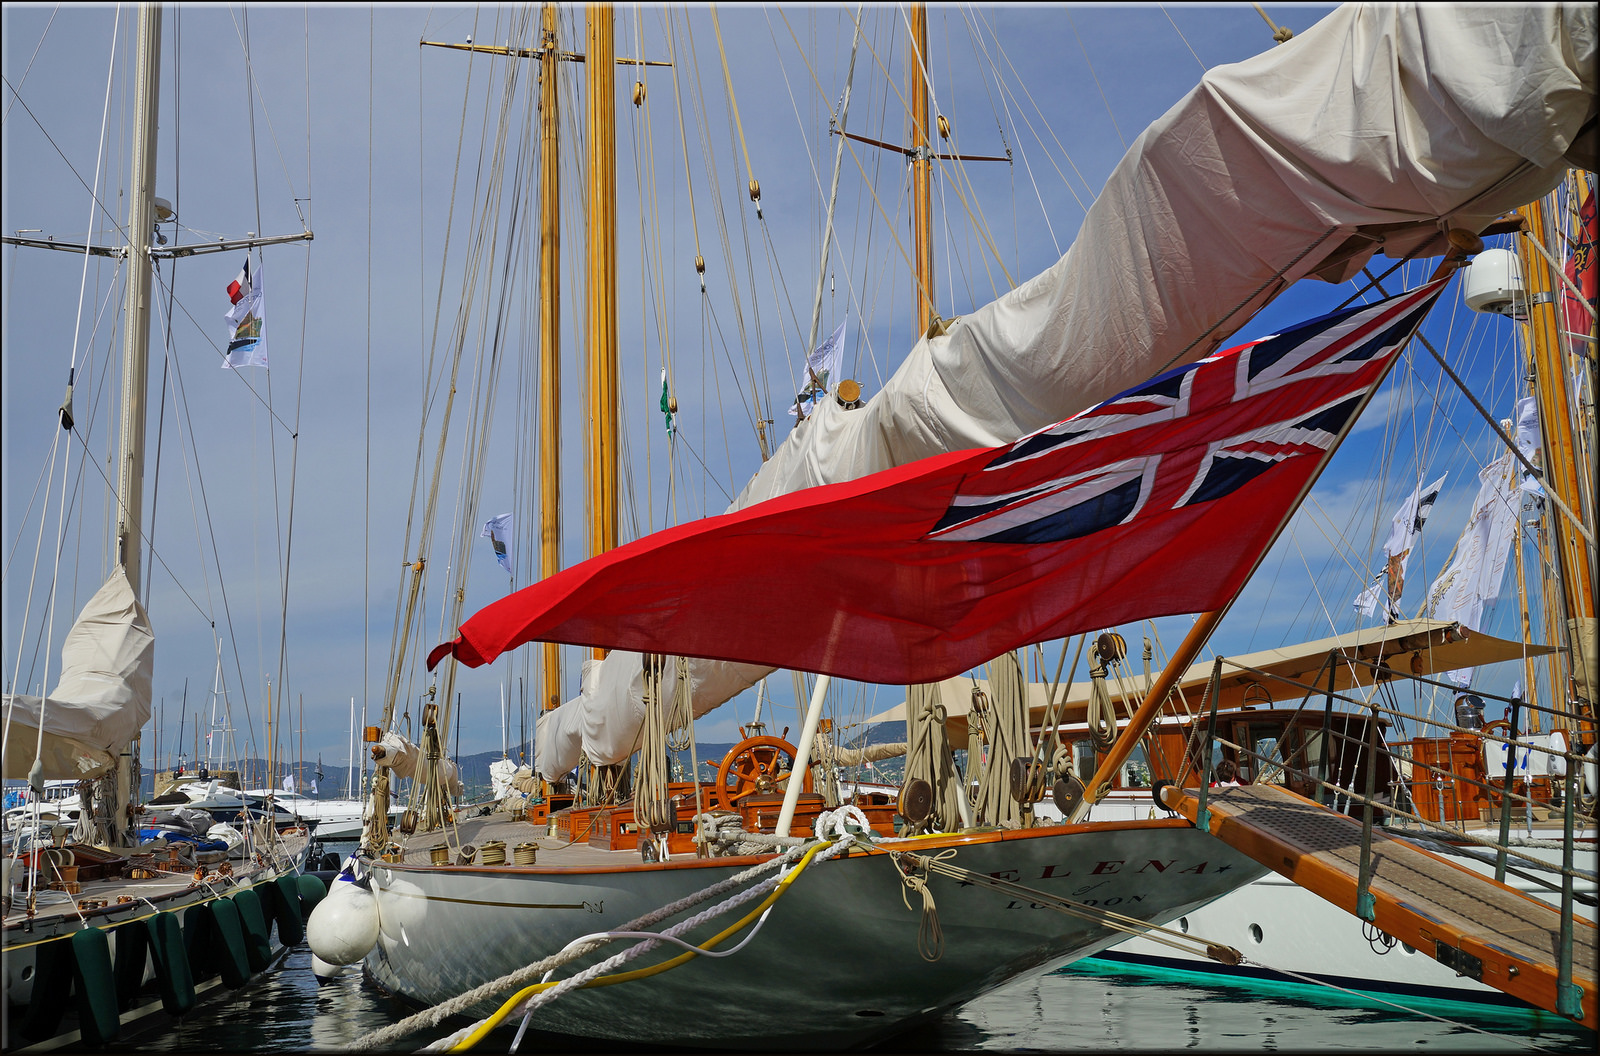 Nautical flags nautical pennants ensigns banners nautical we produce our nautical flags to the highest standard using materials approved by the ministry of defence for their naval flags all of our nautical flags publicscrutiny Images